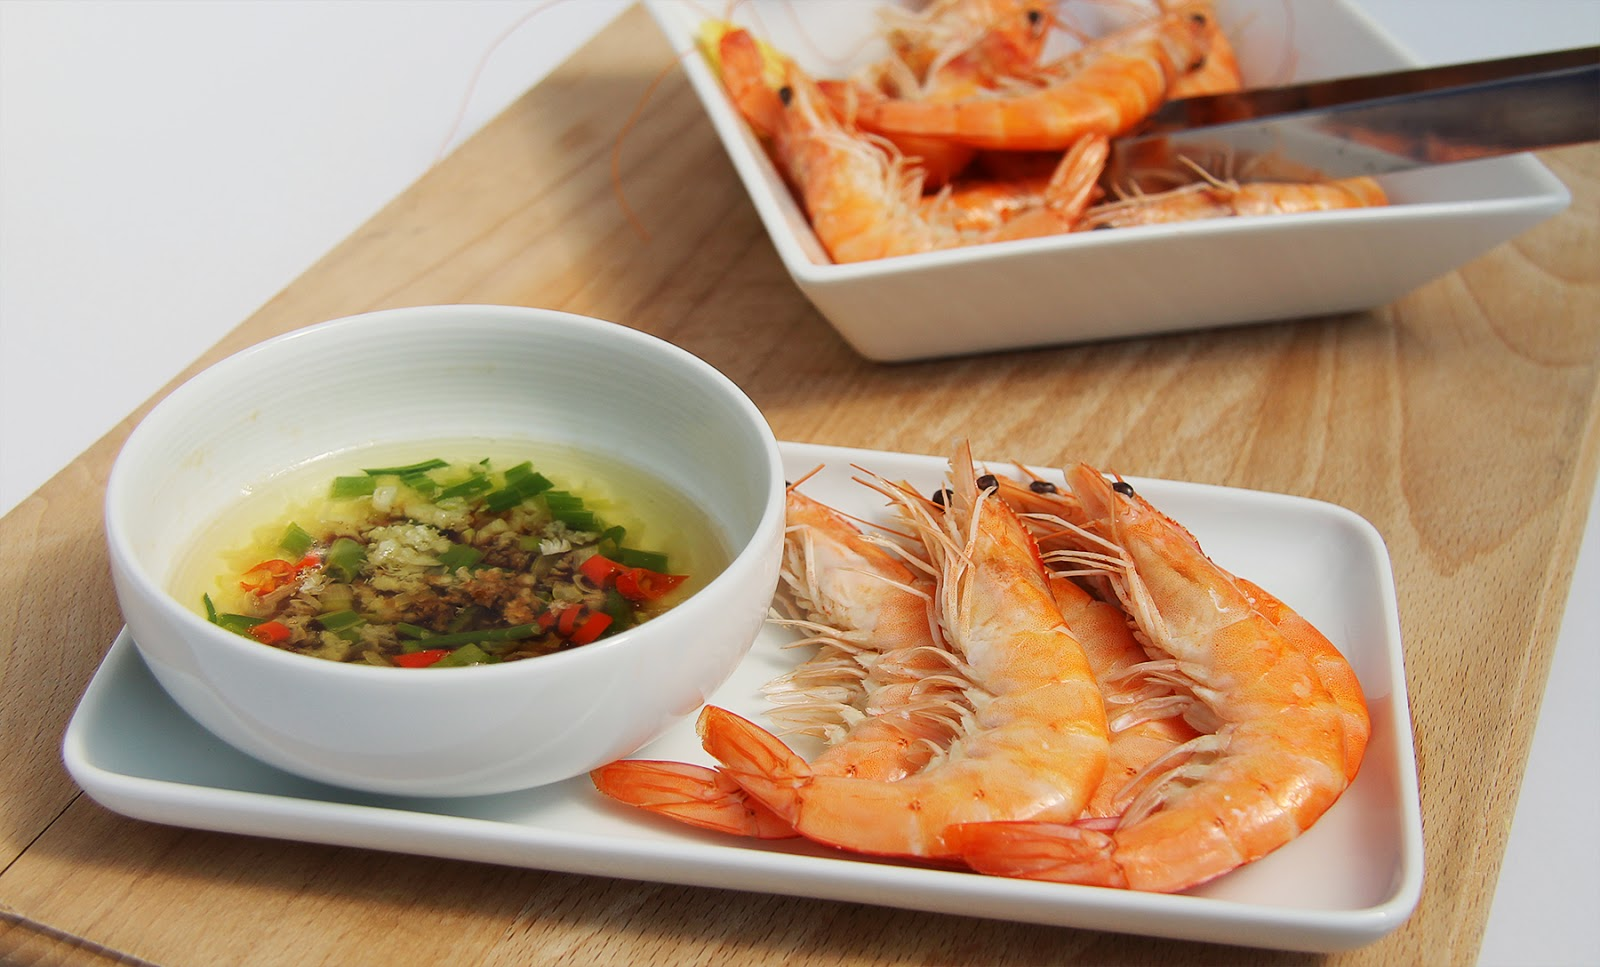 Shelled King Prawns with Garlic Dipping Sauce  Pop and Wok